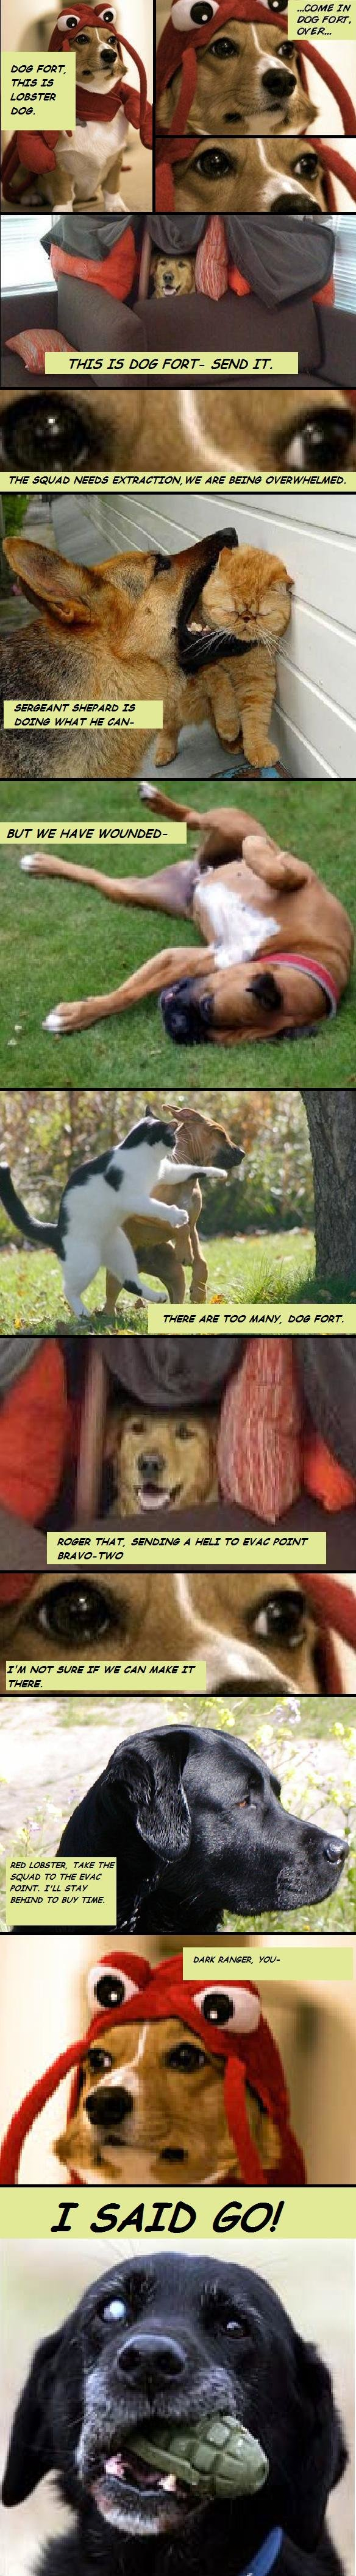 heroes - dog fort